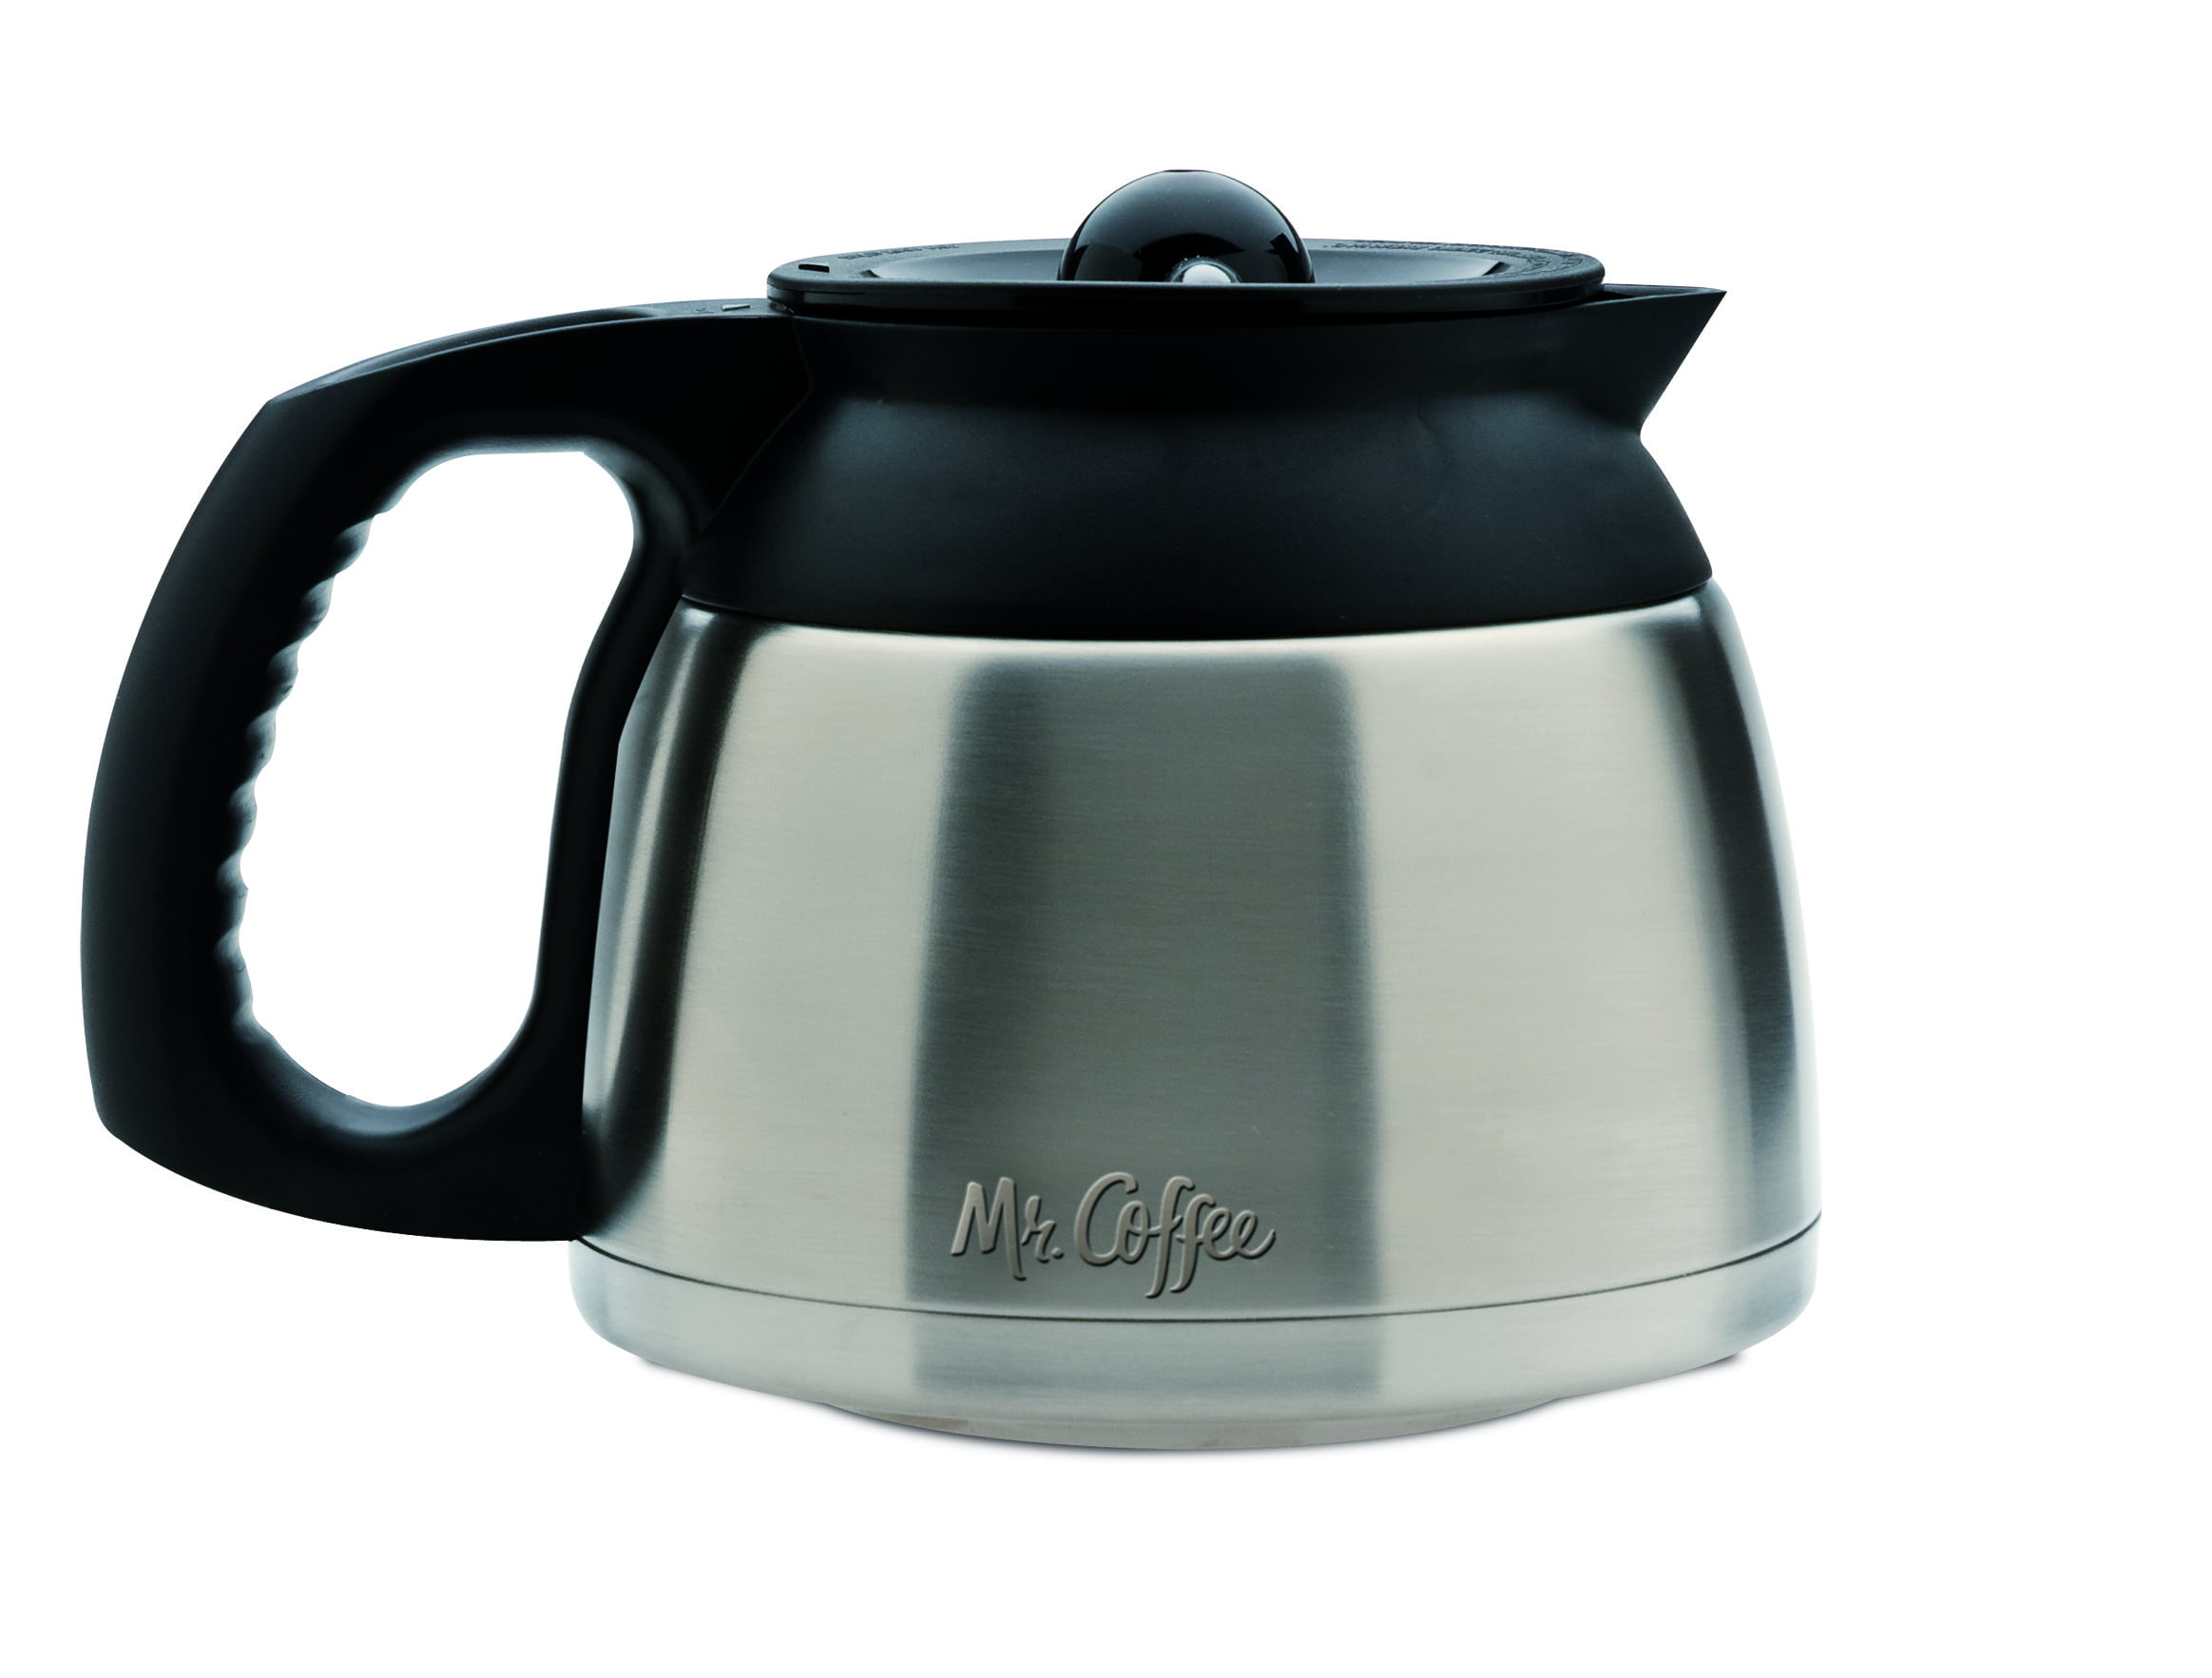 Mr. Coffee 8 Cup Thermal Carafe